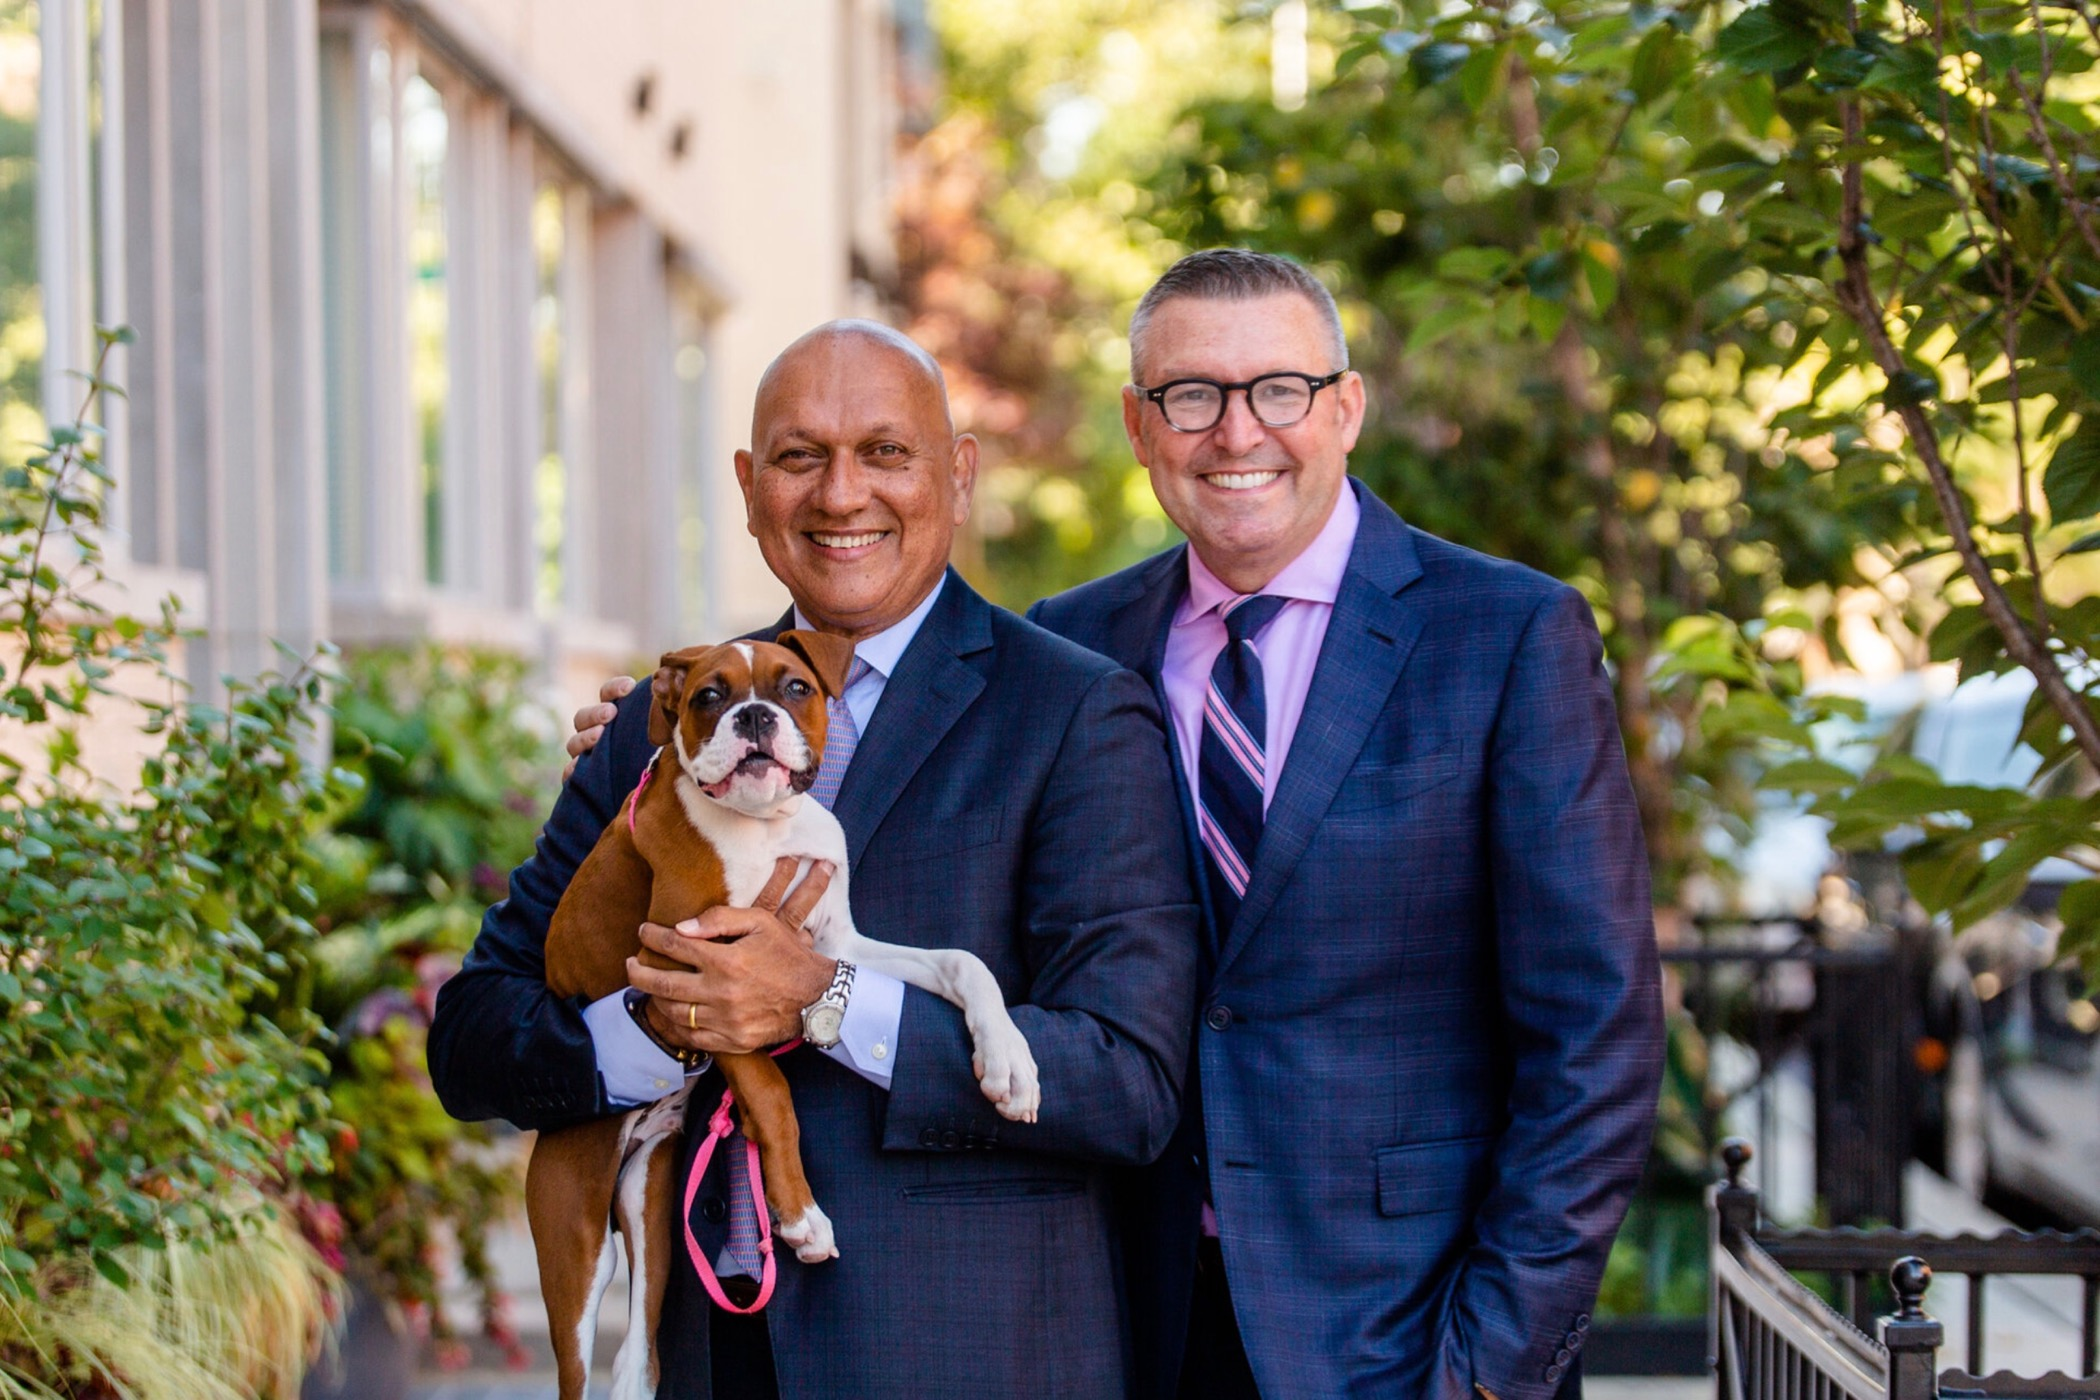 Emergency room Dr. Kevin Baumlin (right) pictured with his husband Patrick and their boxer Duke